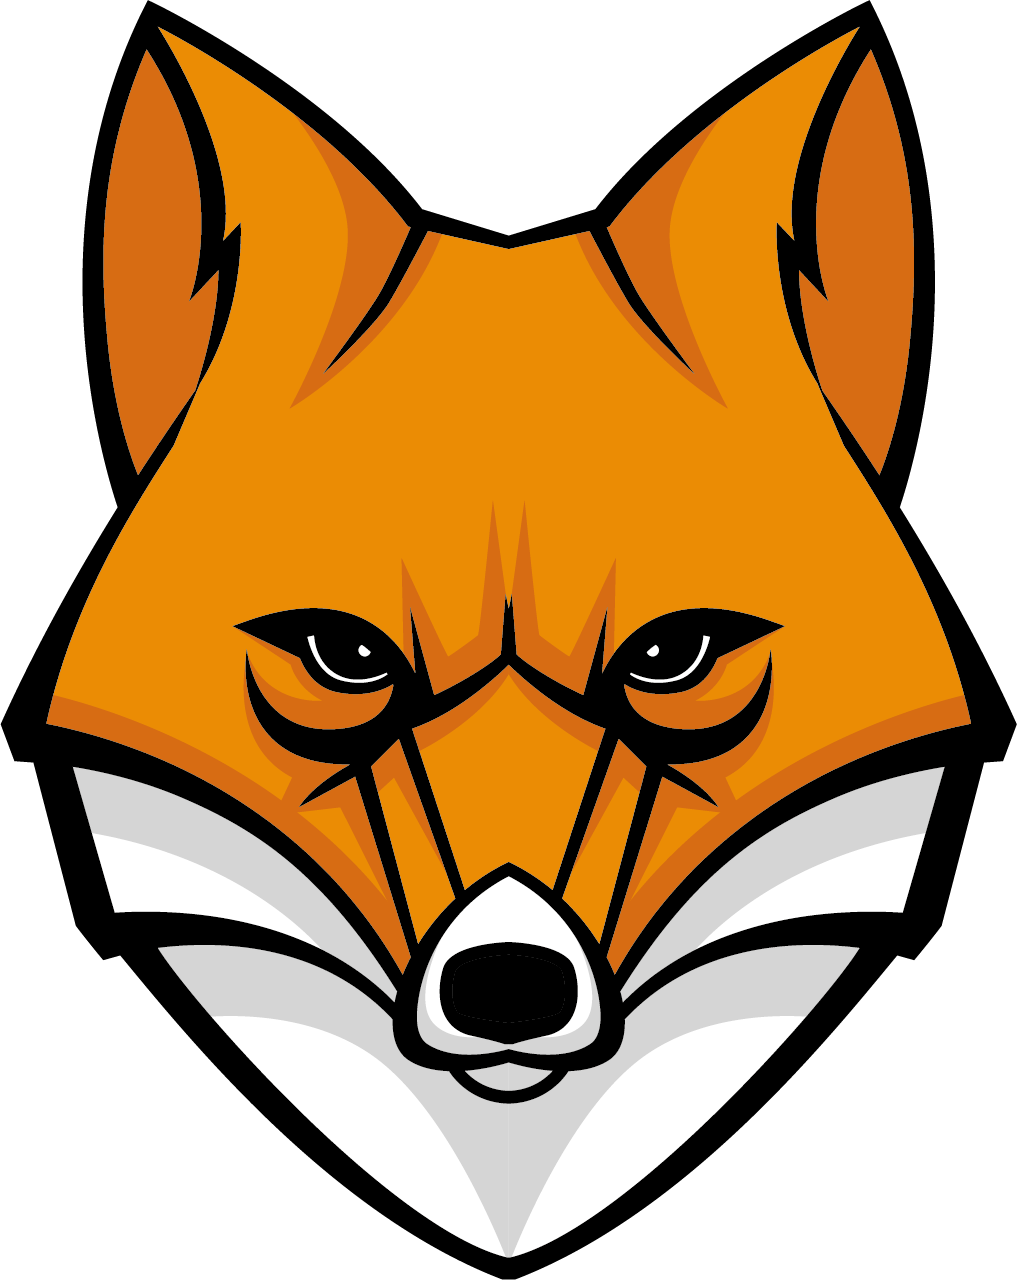 Fox clipart png. Transparent free images only